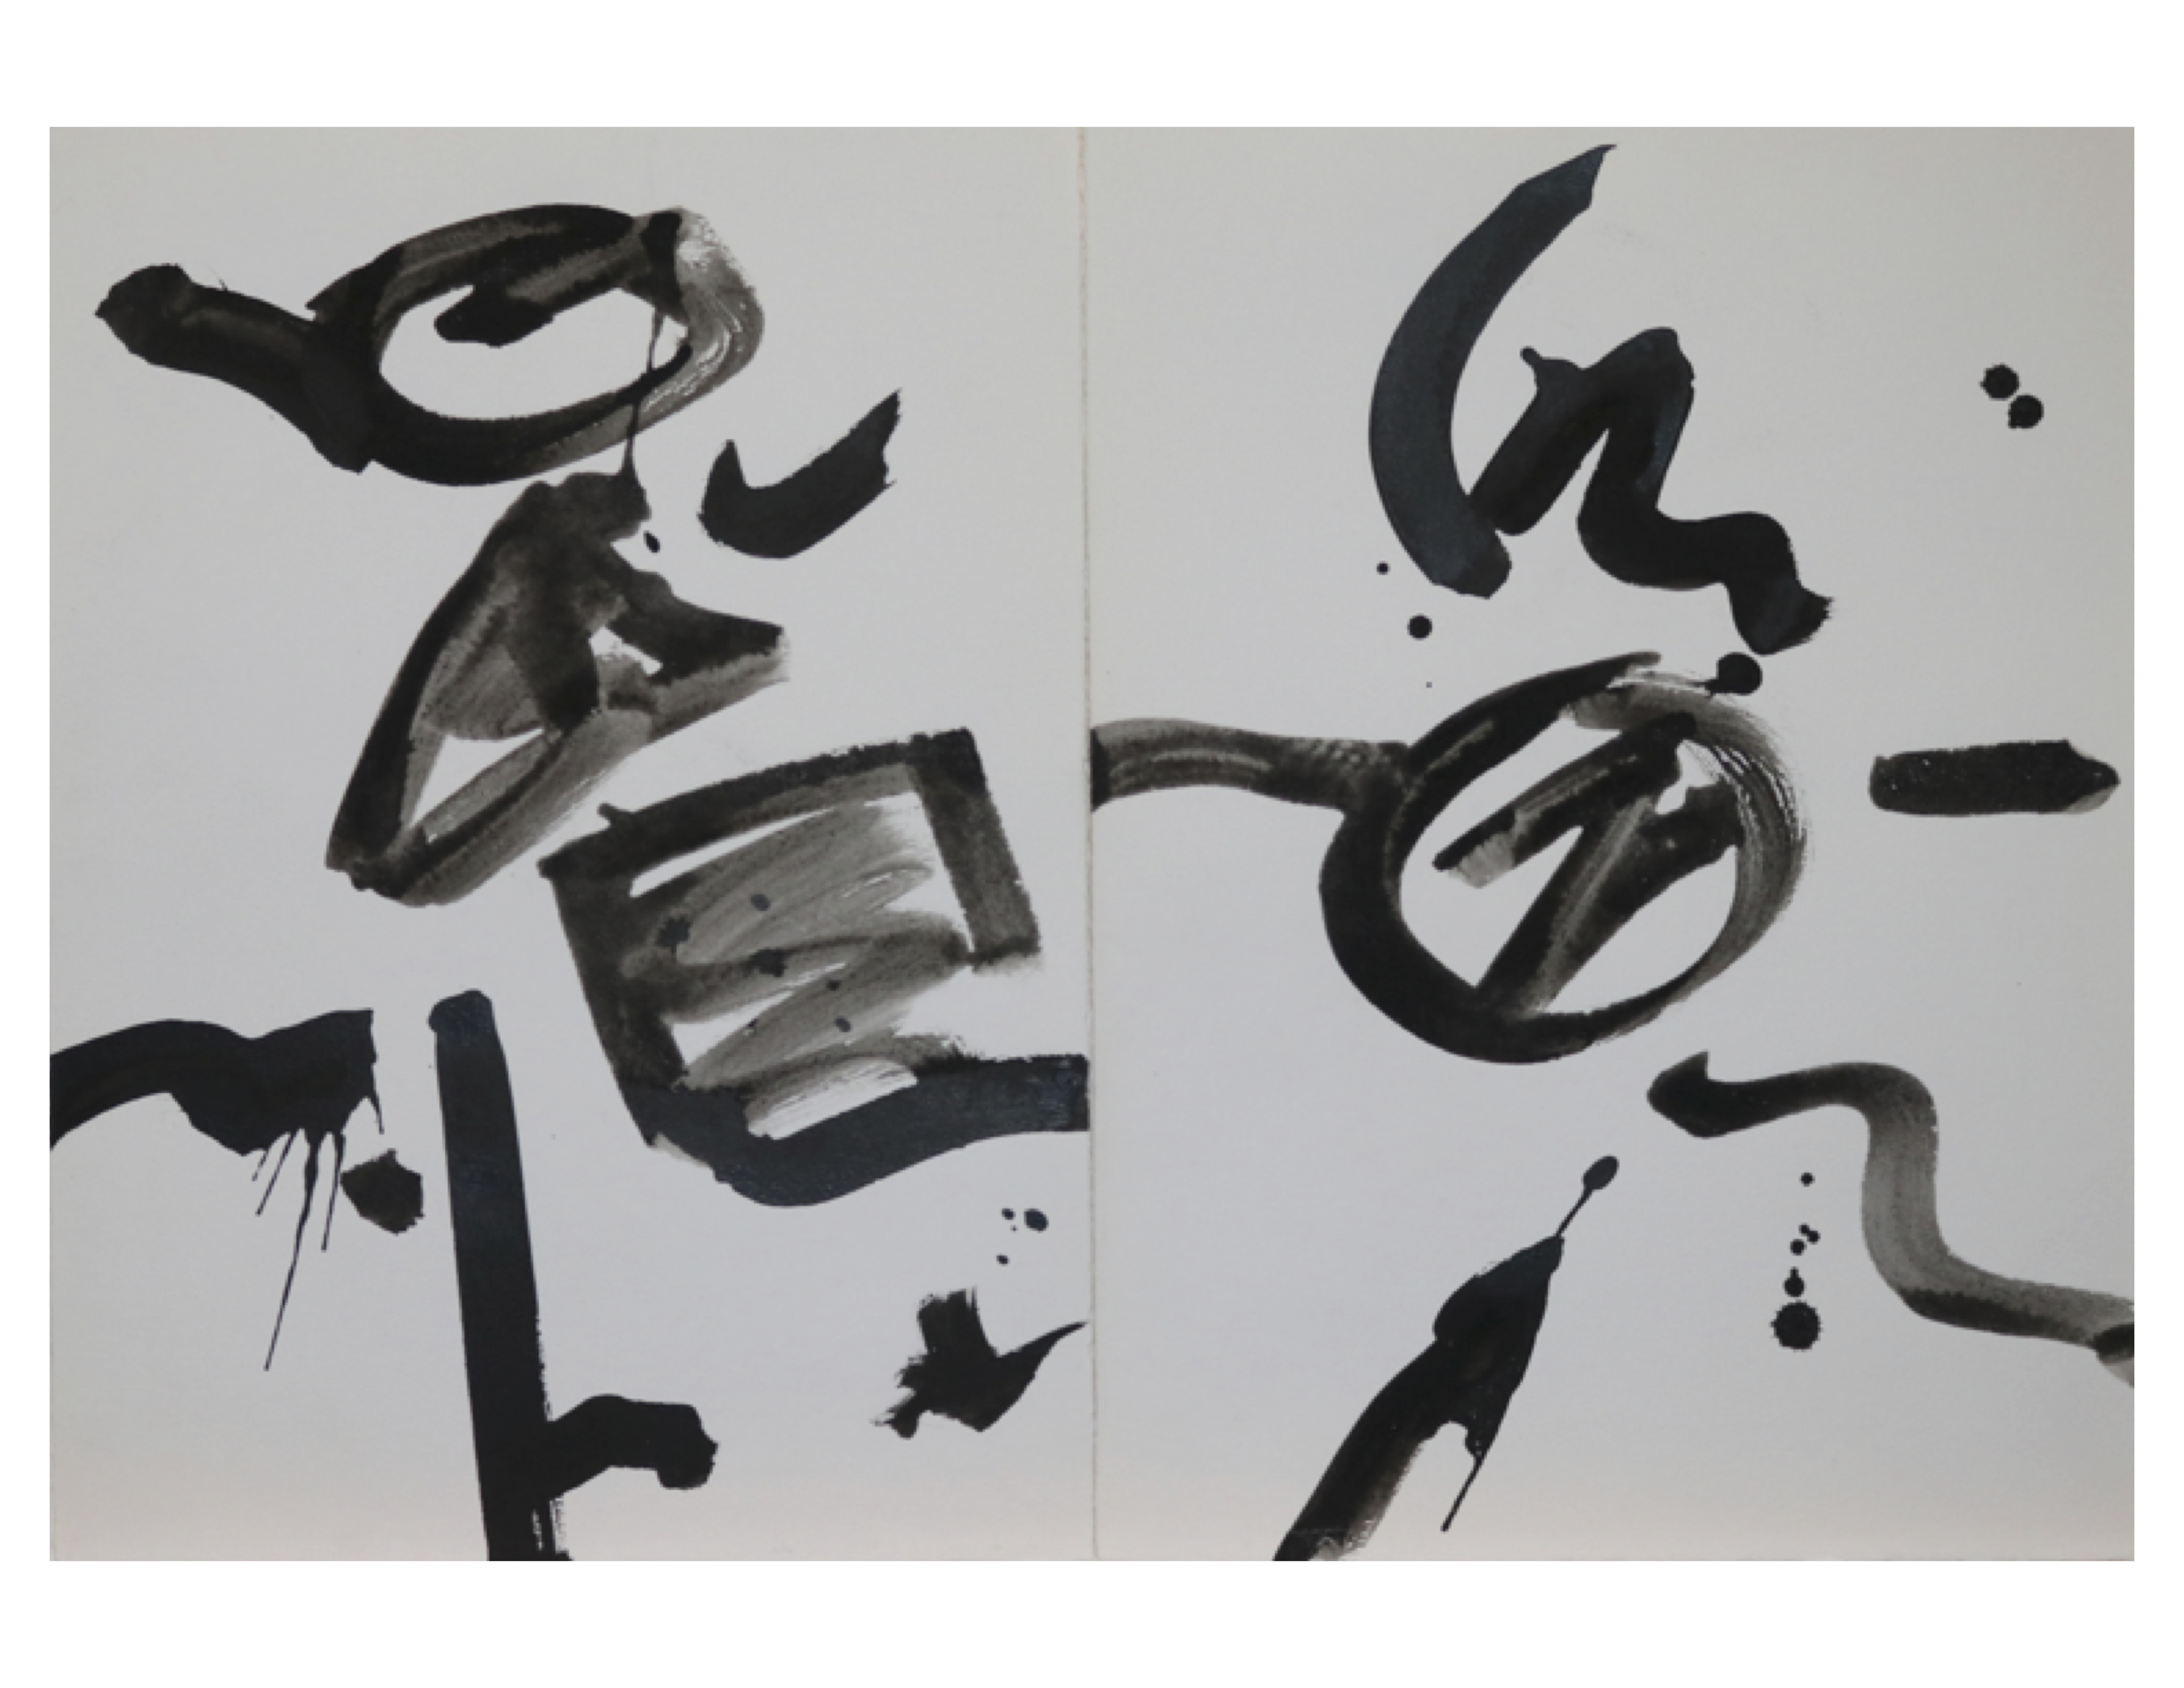 Diptych 1, Circle triangle square, March 10,1979, ink on paper, each sheet 25 cm x 35.2 cm